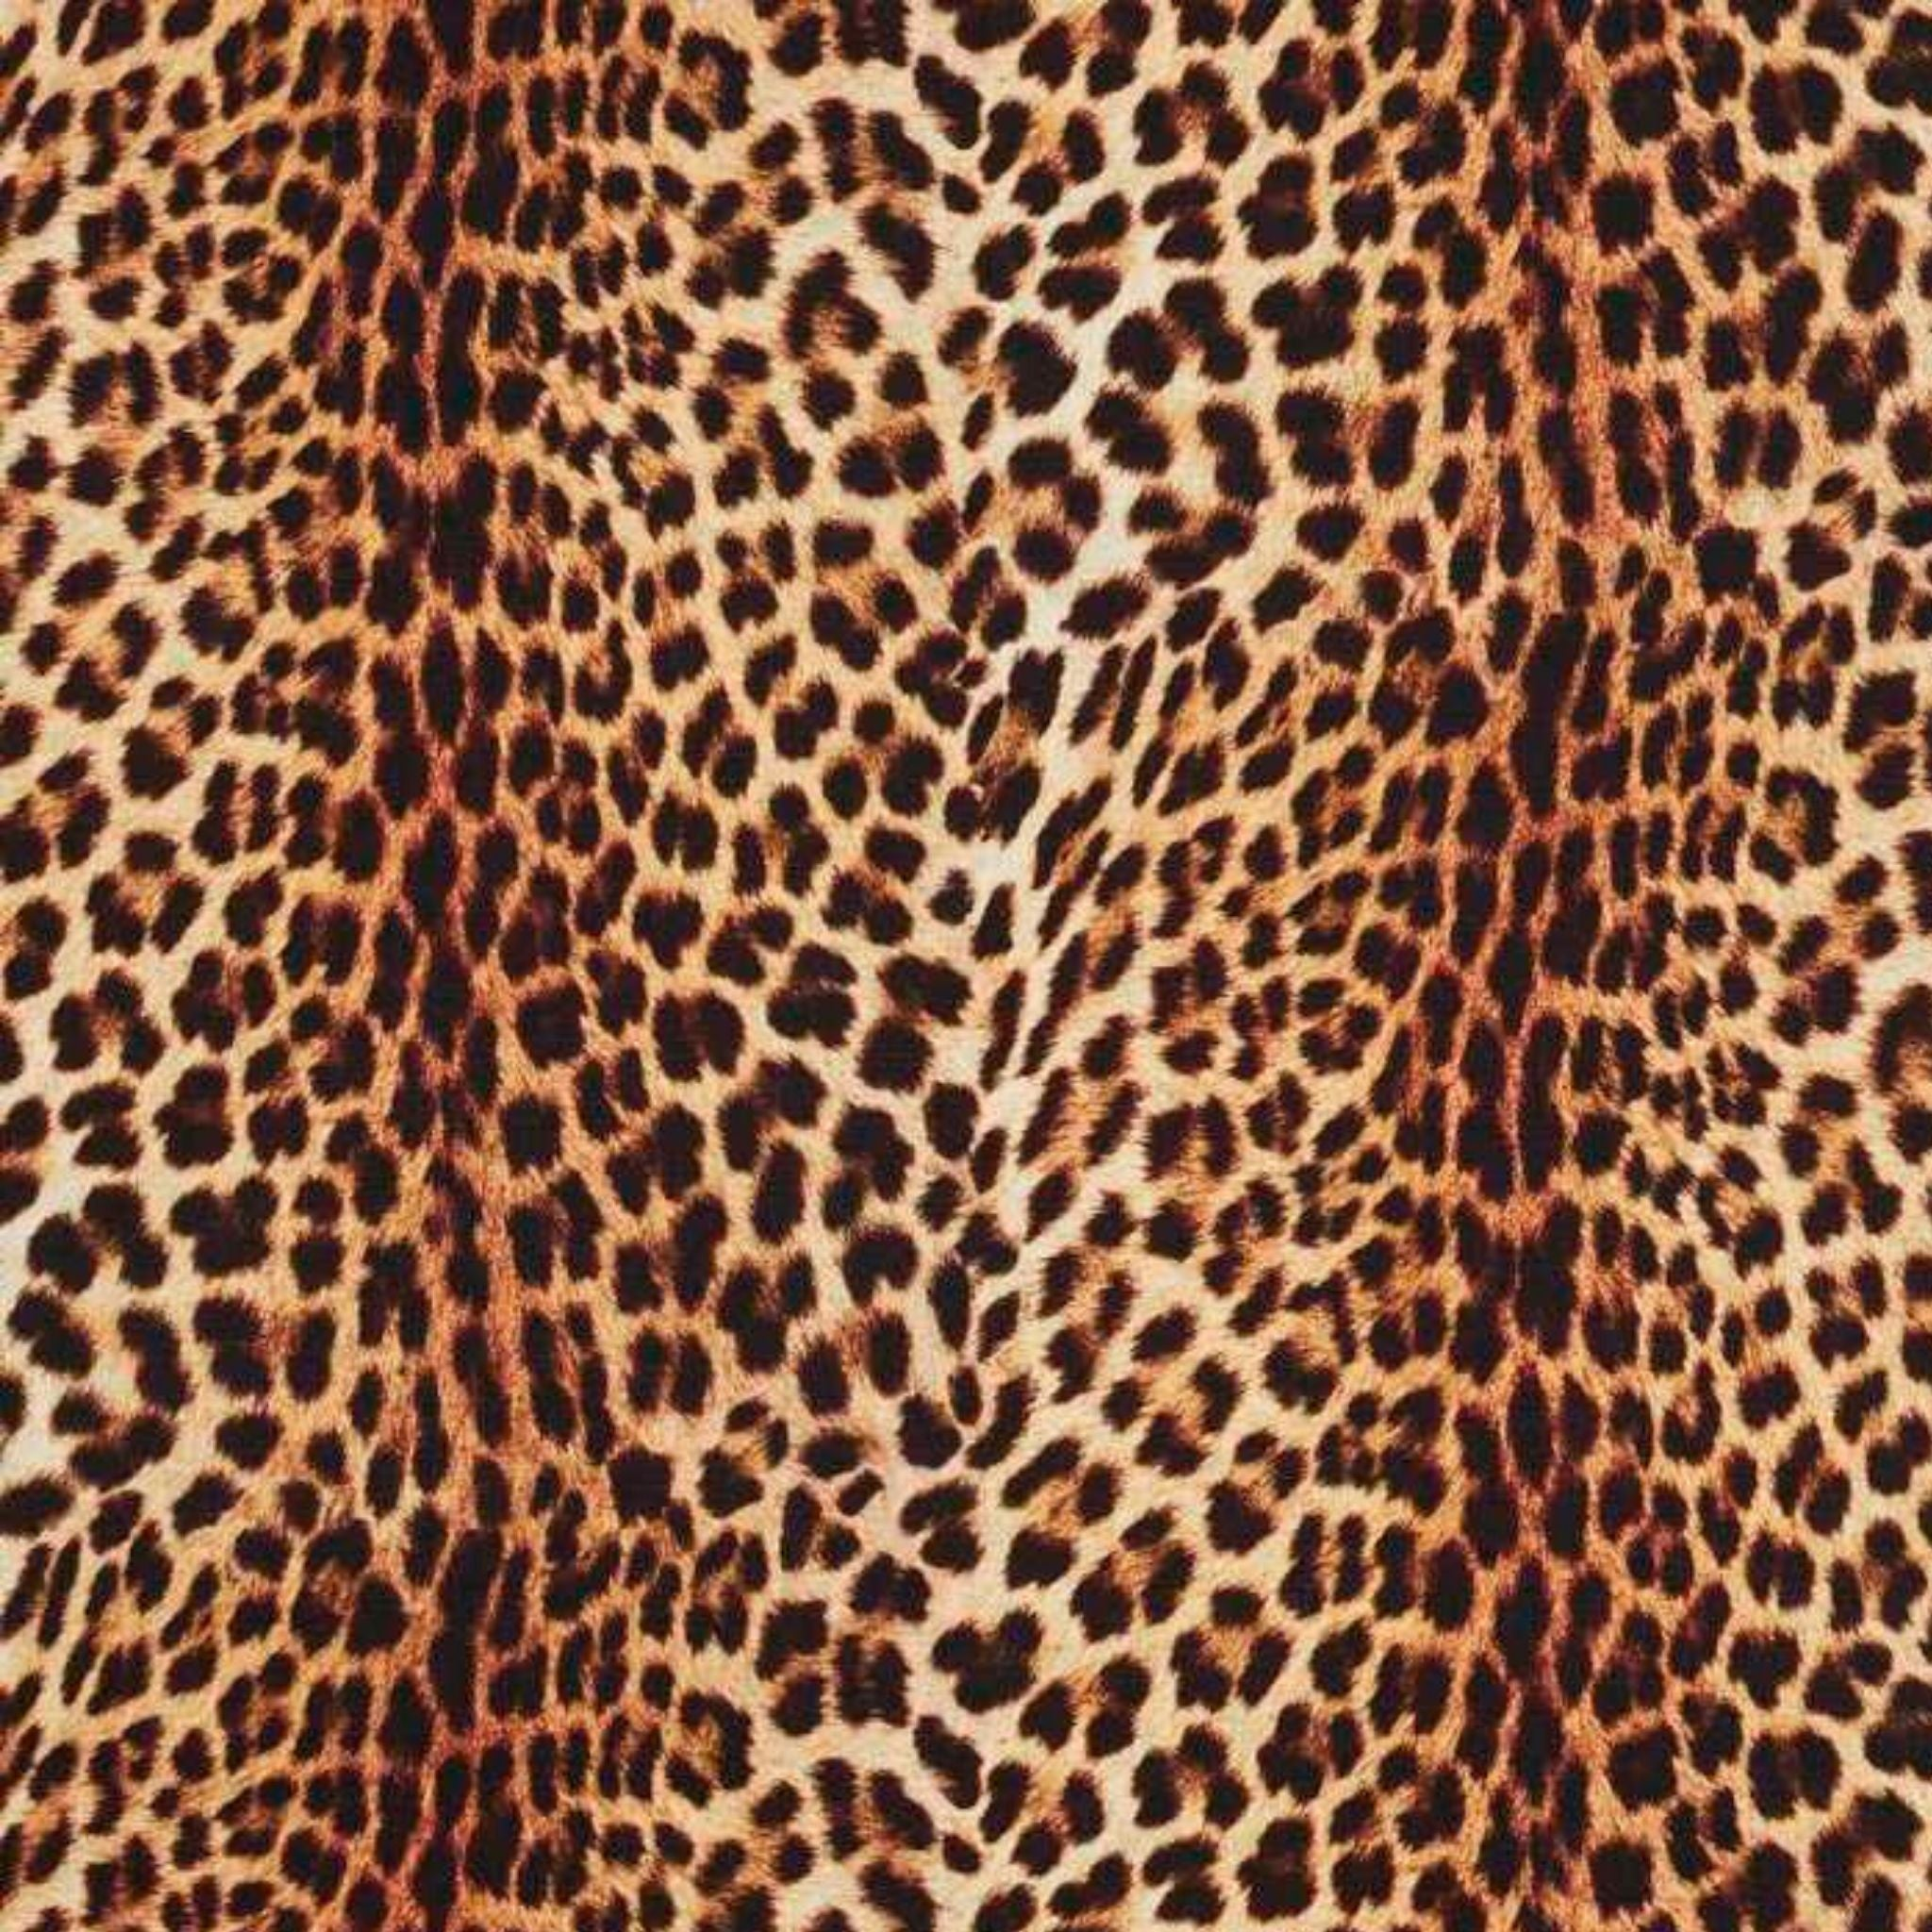 Dark brown spots on creamy brown background. Leopard print.